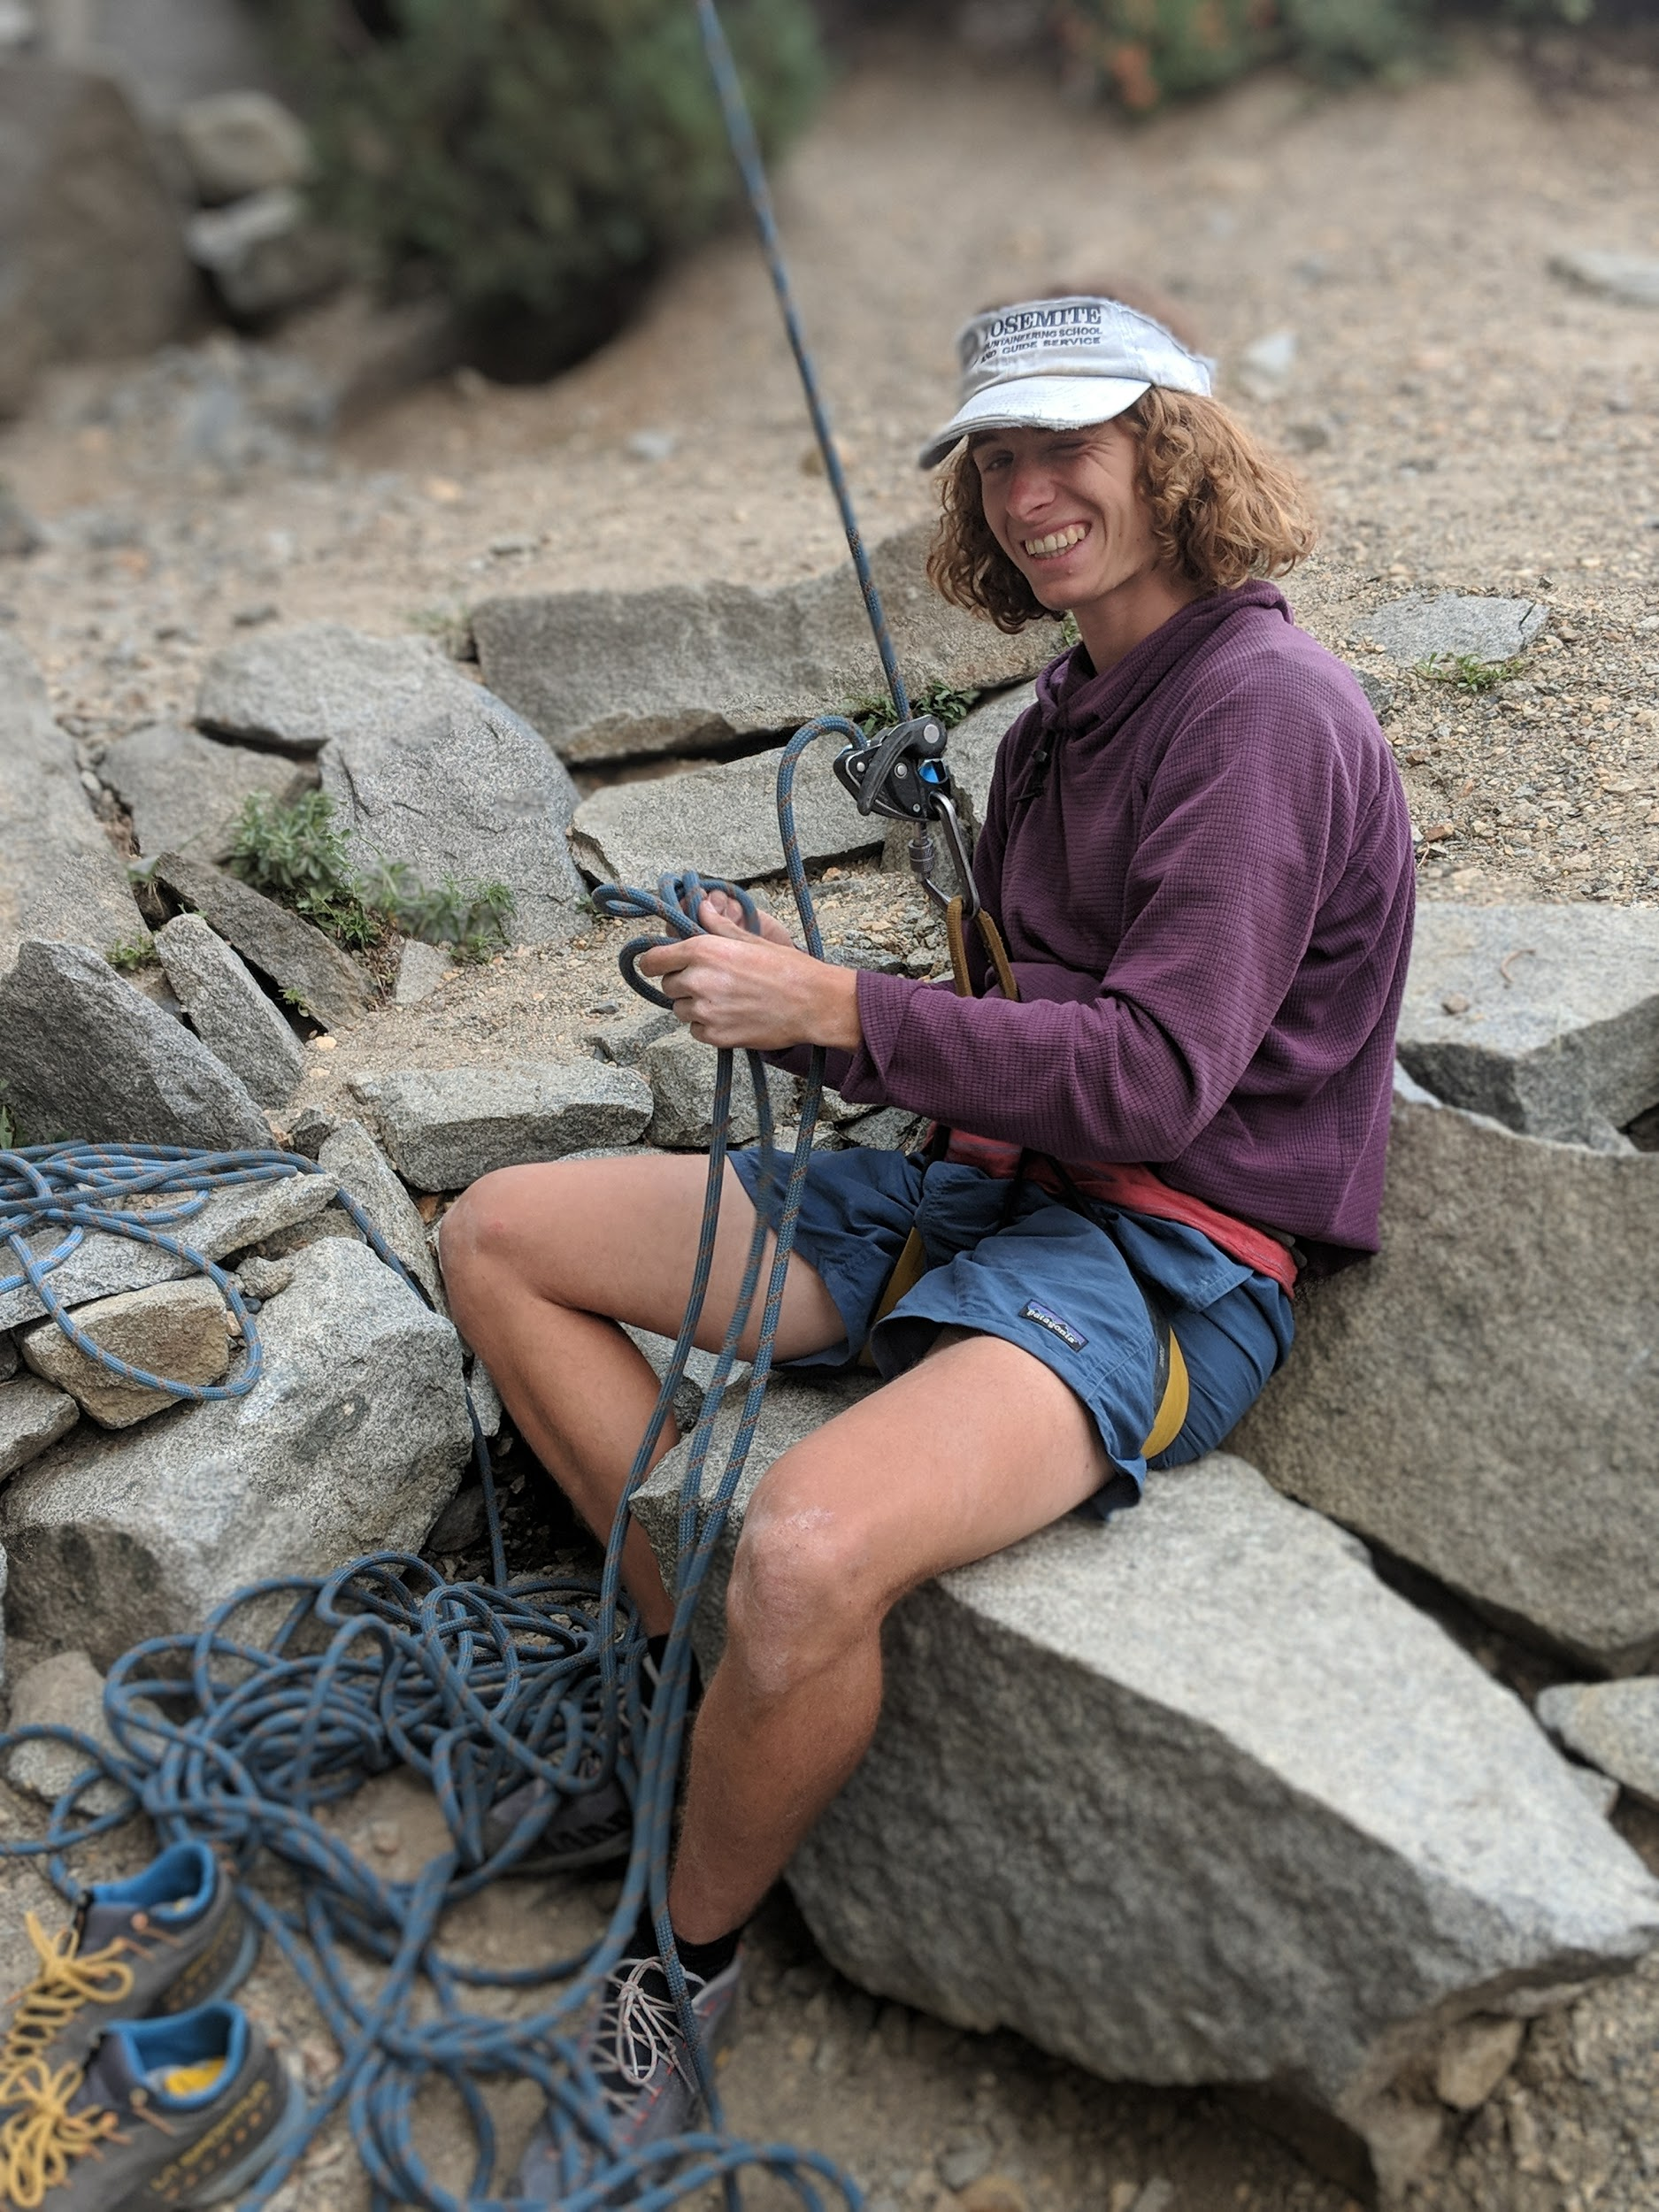 A Male Rock Climbing Belaying Using A Grigri